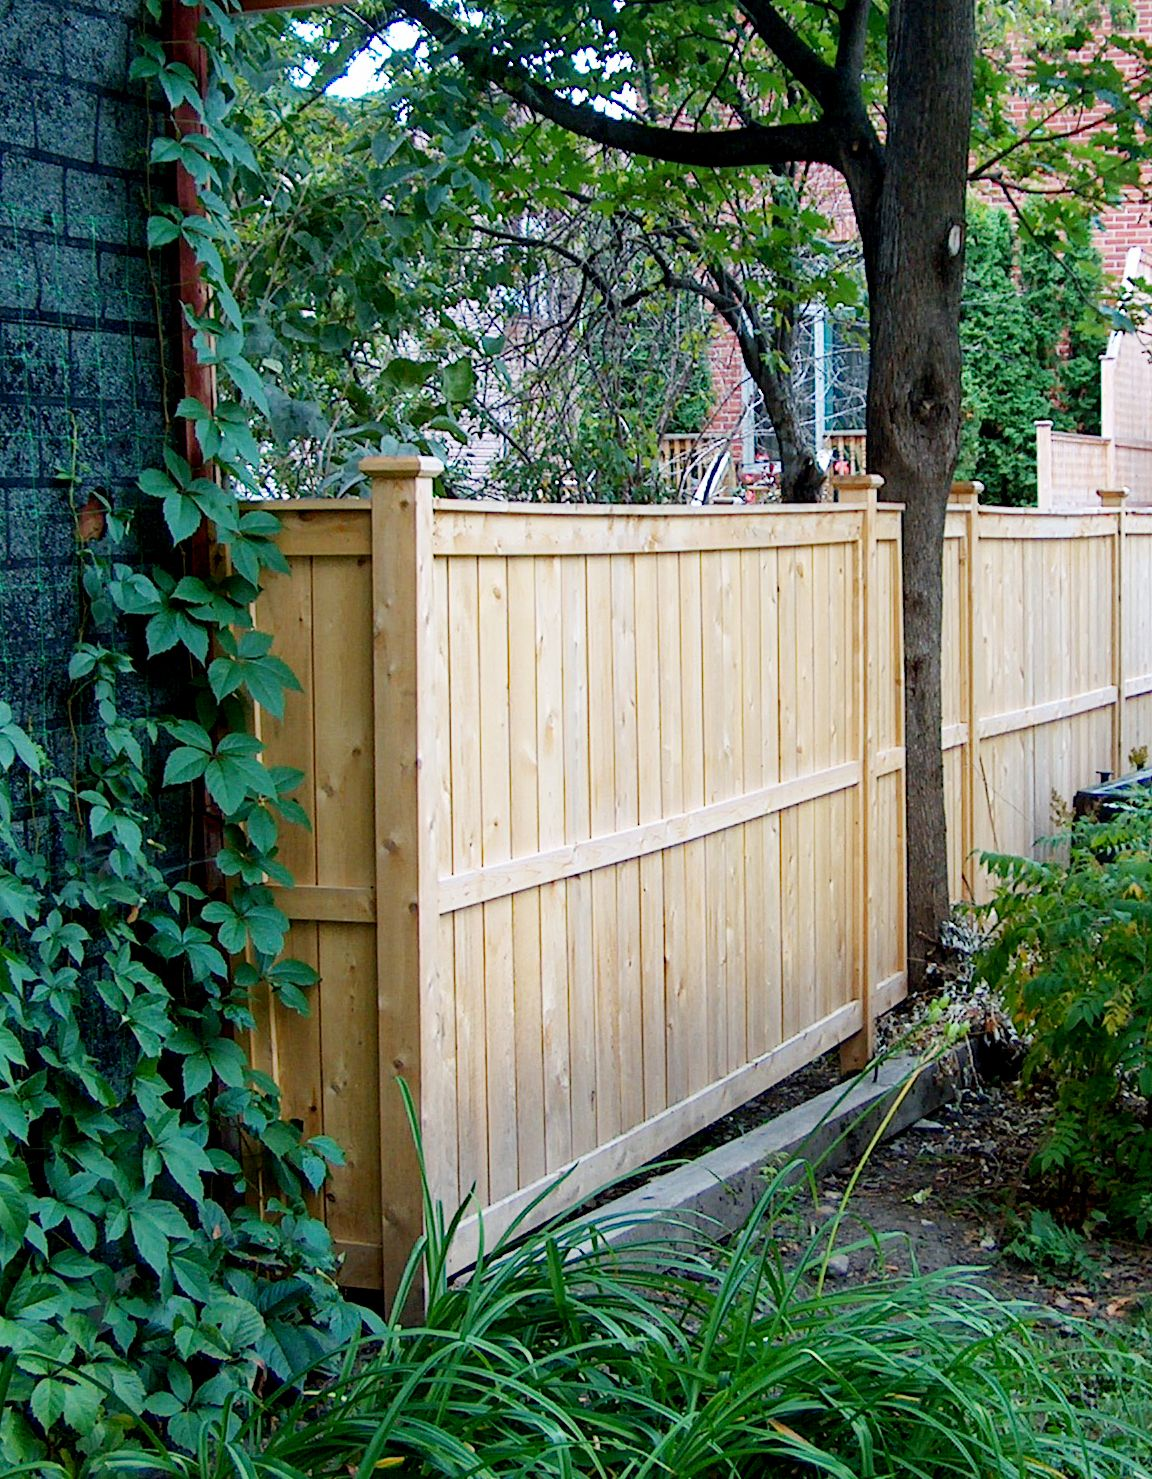 Attractive Elyria Fence For Your Outdoor Decor: Fence Beautiful Ideas Wood  Fence Door Adorable Custom Wood Gate